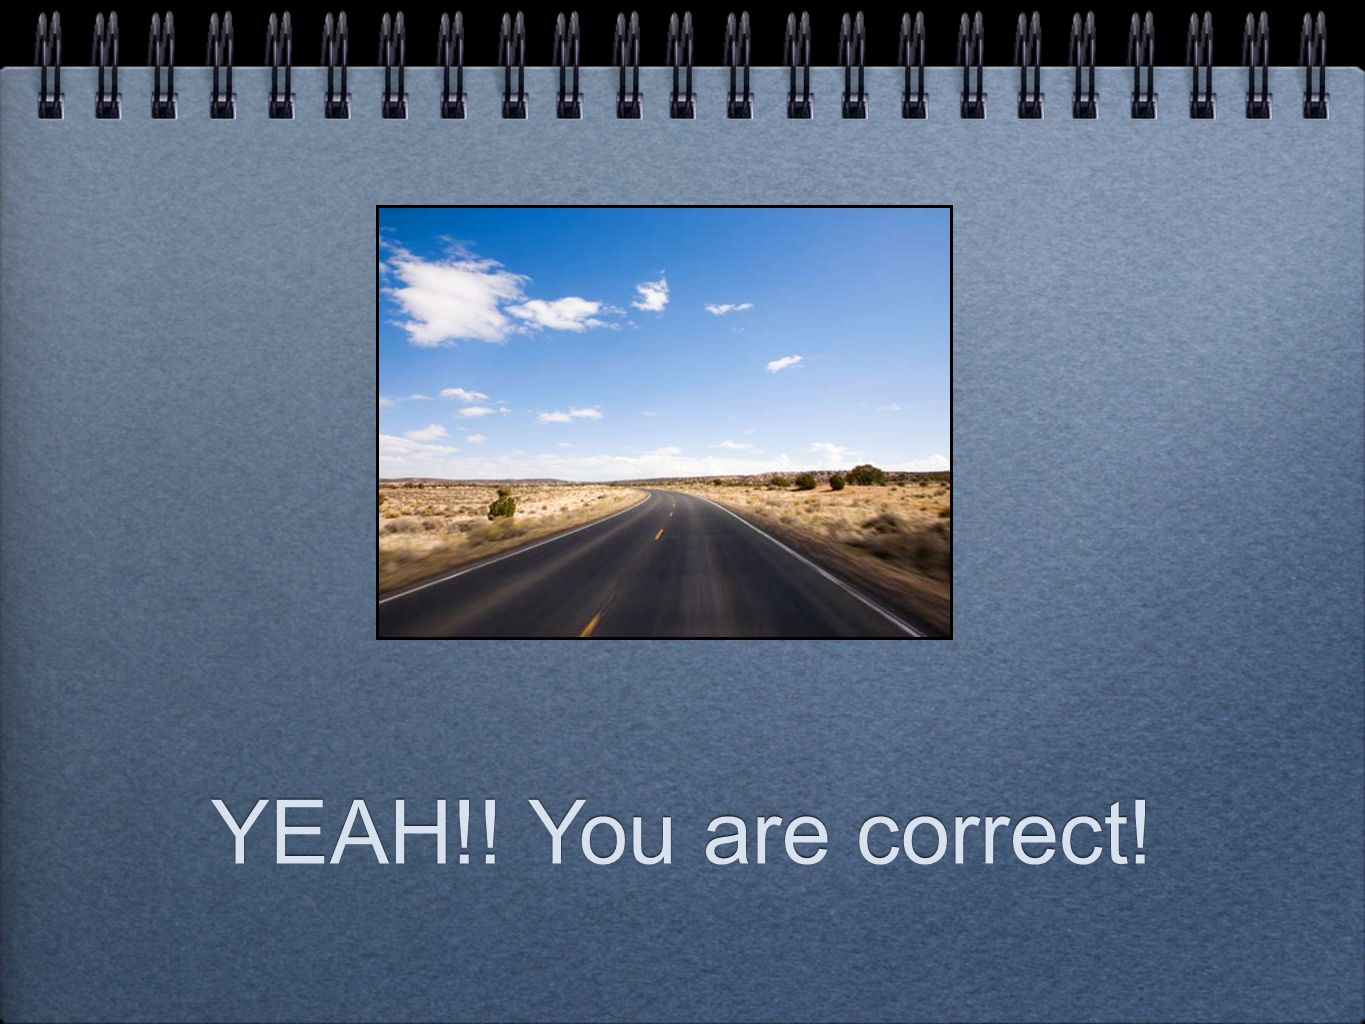 YEAH!! You are correct!